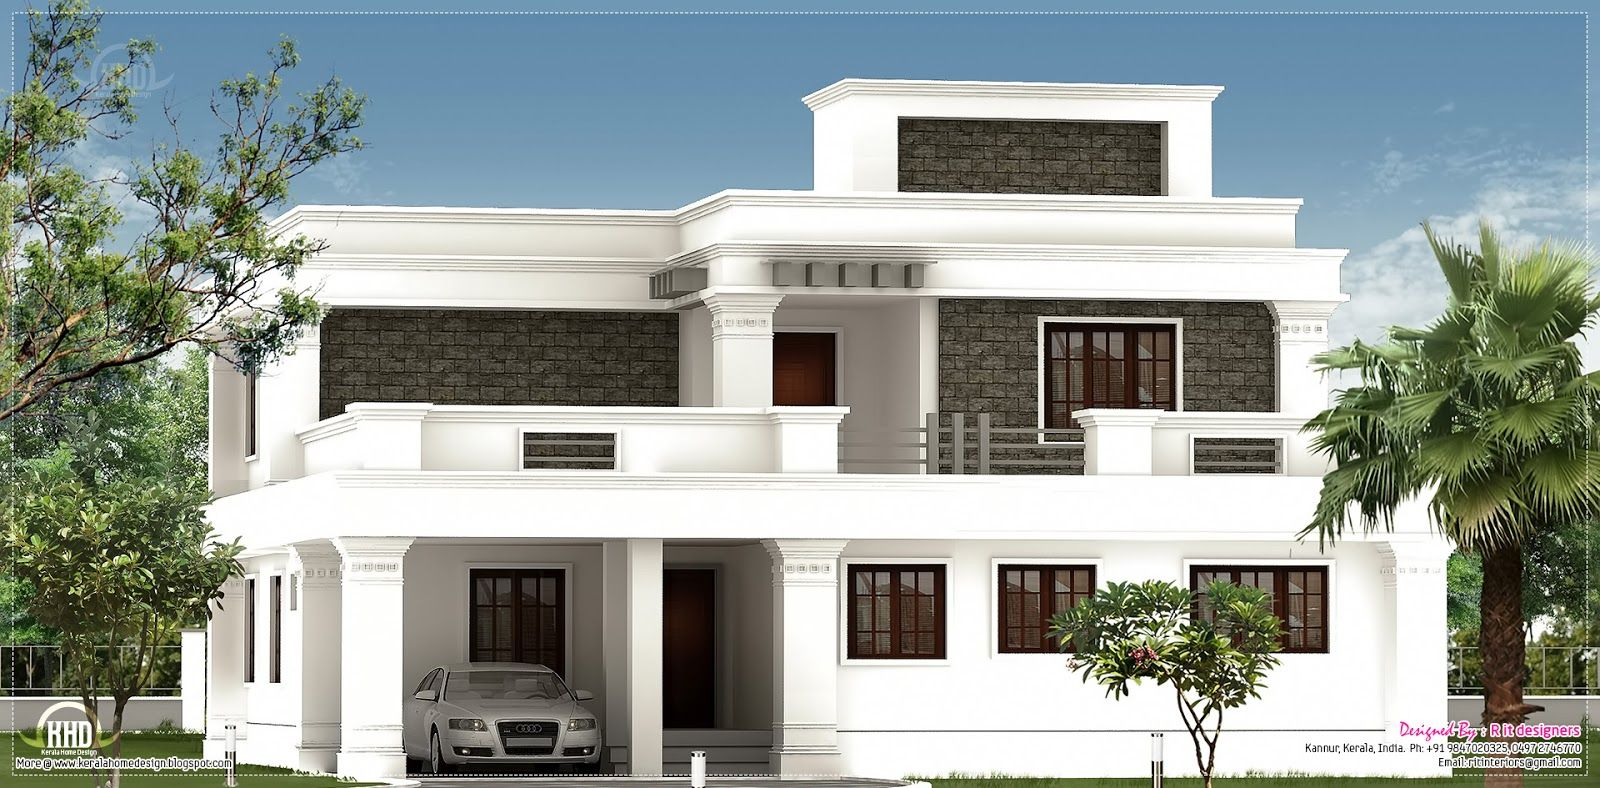 Flat roof homes designs flat roof villa exterior in 2400 for Indian home design photos exterior